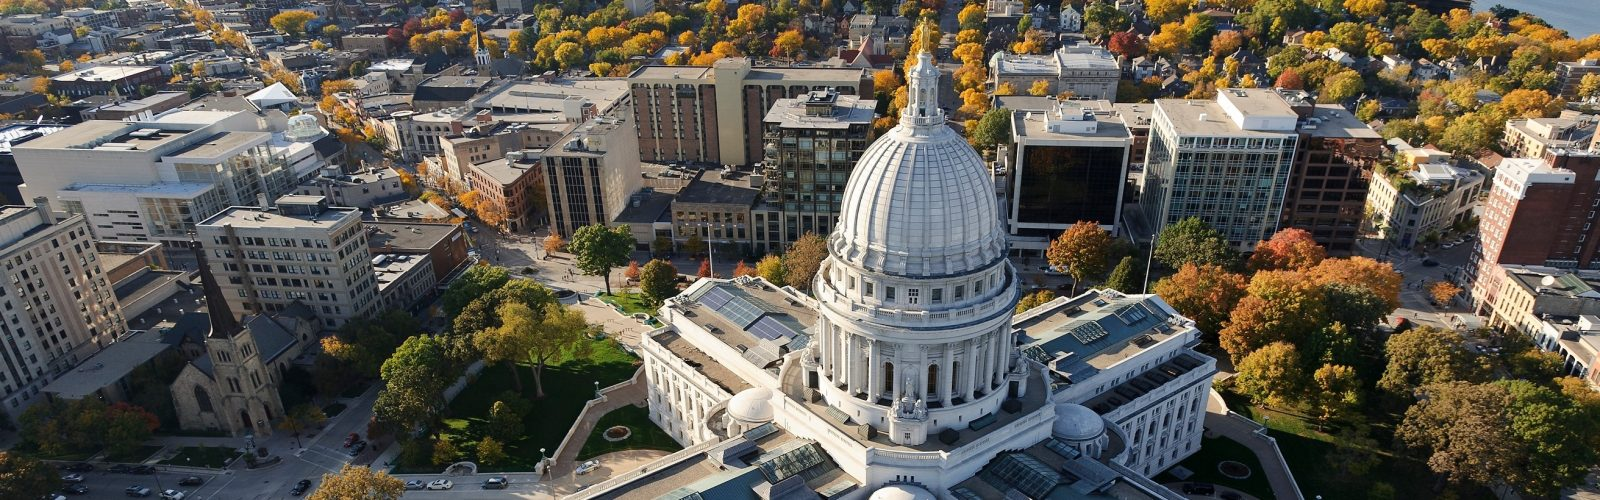 aerial view of Wisconsin Capitol